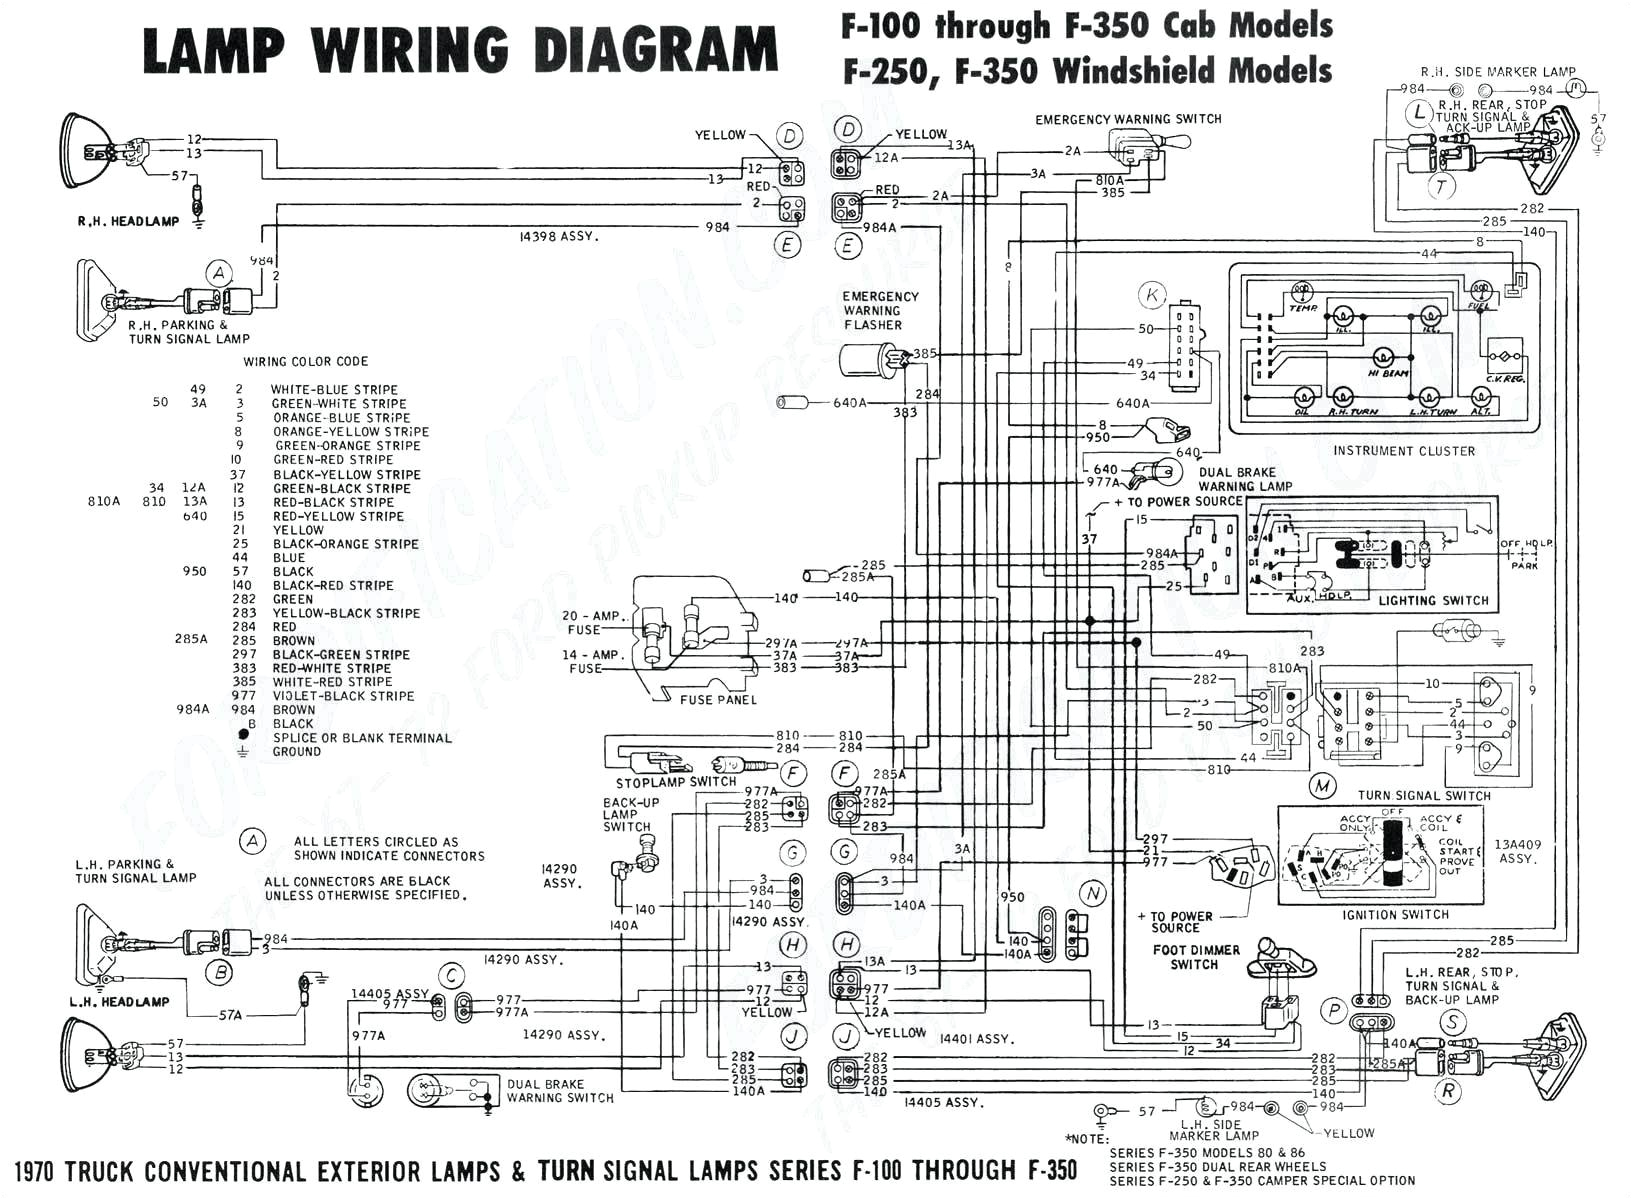 ouku car stereo wiring diagram wiring diagram inside ouku car stereo wiring diagram wiring diagram toolbox